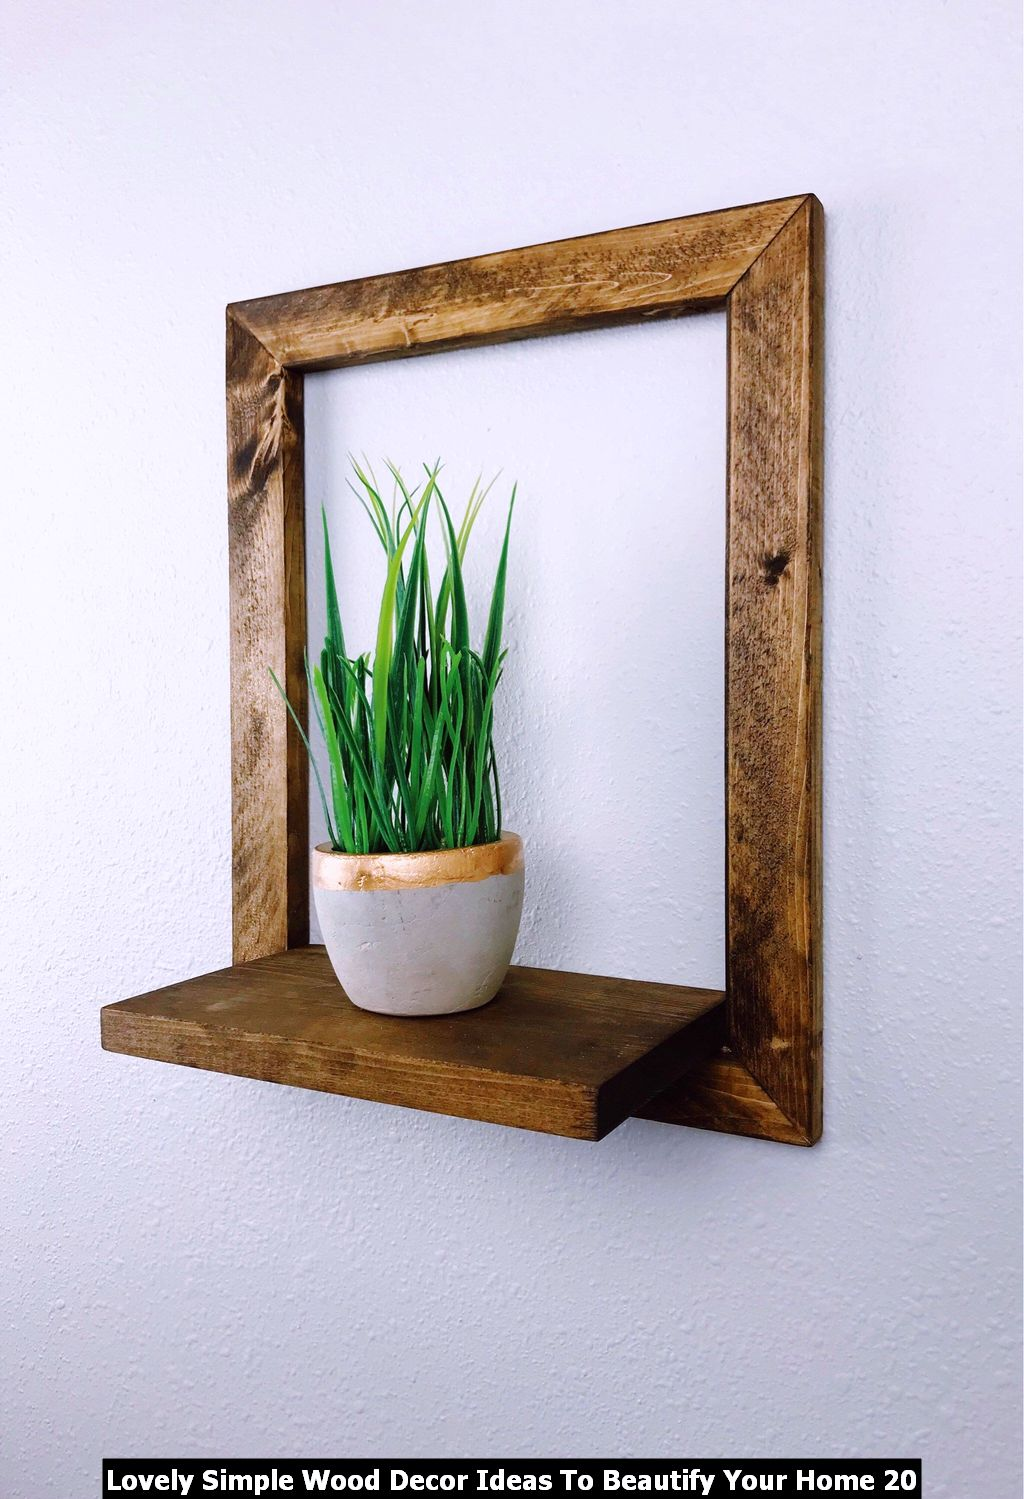 Lovely Simple Wood Decor Ideas To Beautify Your Home 20